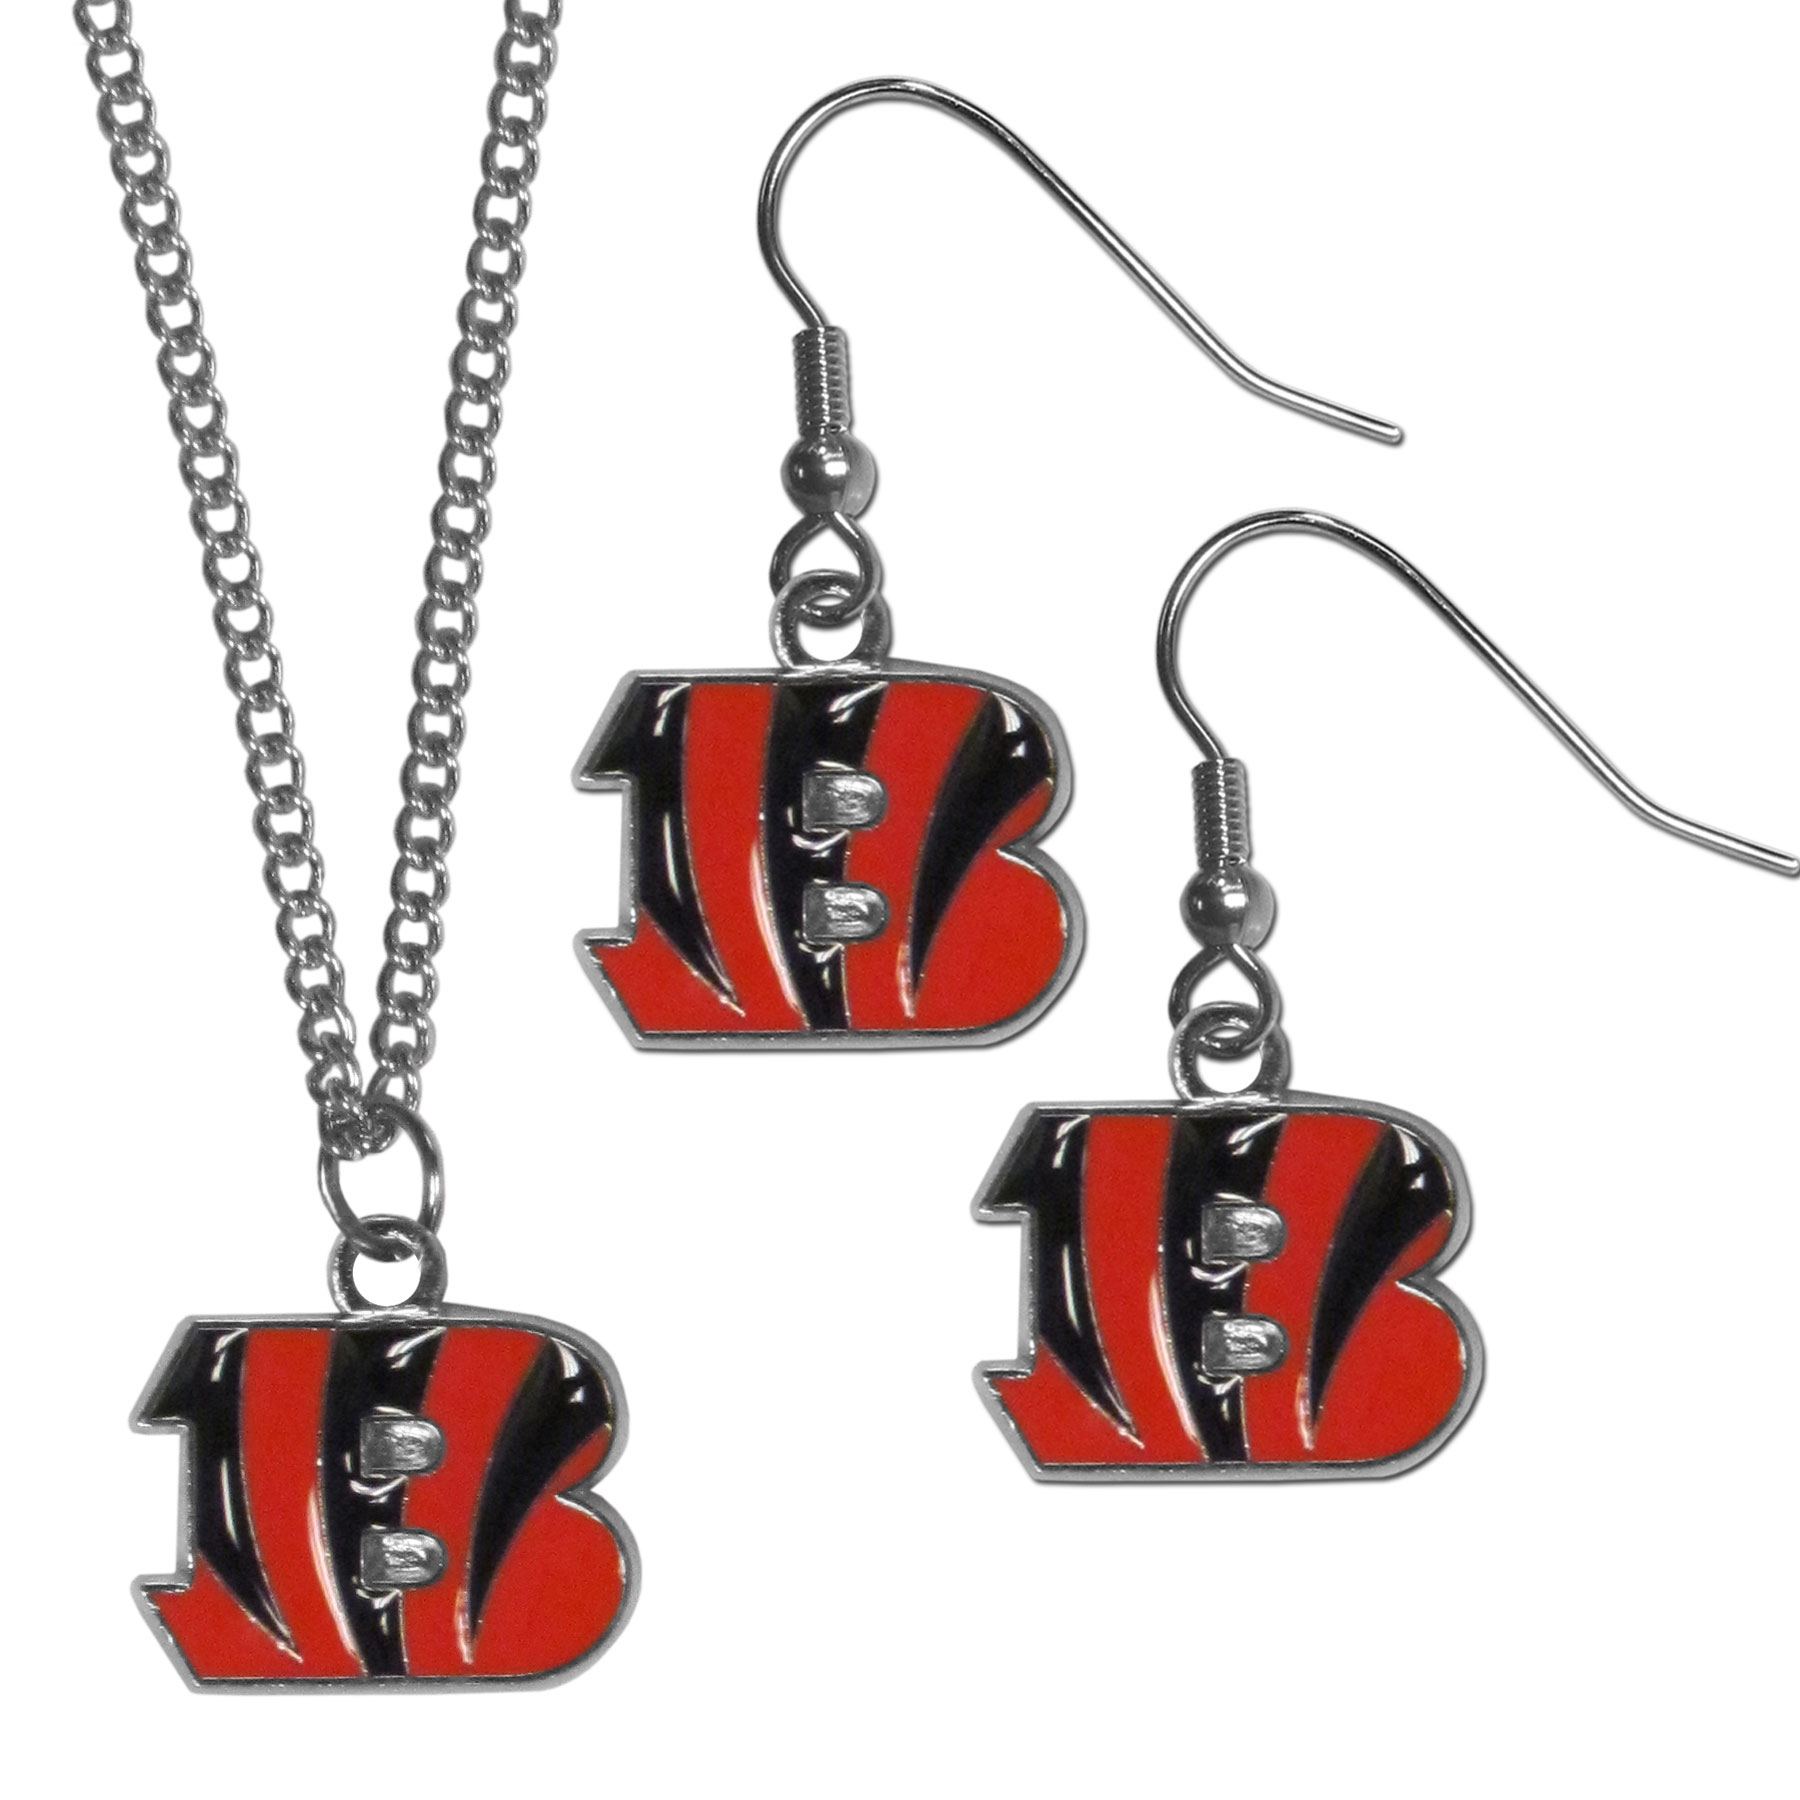 Cincinnati Bengals Dangle Earrings and Chain Necklace Set - This classic jewelry set contains are most popular Cincinnati Bengals dangle earrings and 22 inch chain necklace. The trendy, dangle earrings are lightweight and feature a fully cast metal team charm with enameled team colors. The matching necklace completes this fashion forward combo and is a spirited set that is perfect for game day but nice enough for everyday.